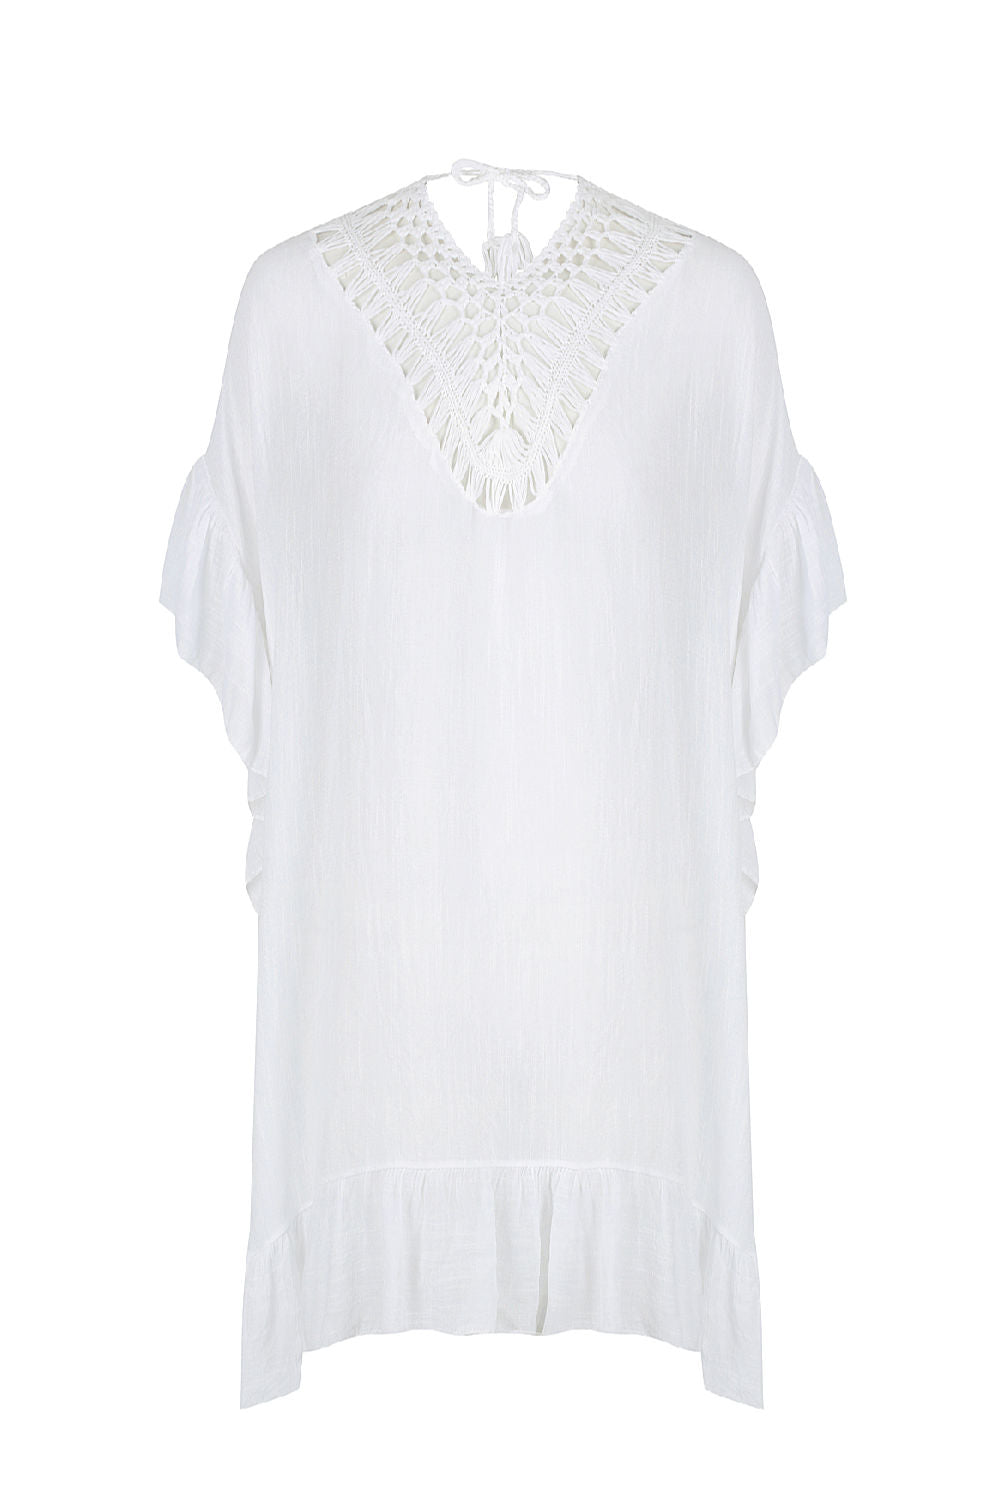 beach-kaftan-dress-cover-up-white-crochet-trim